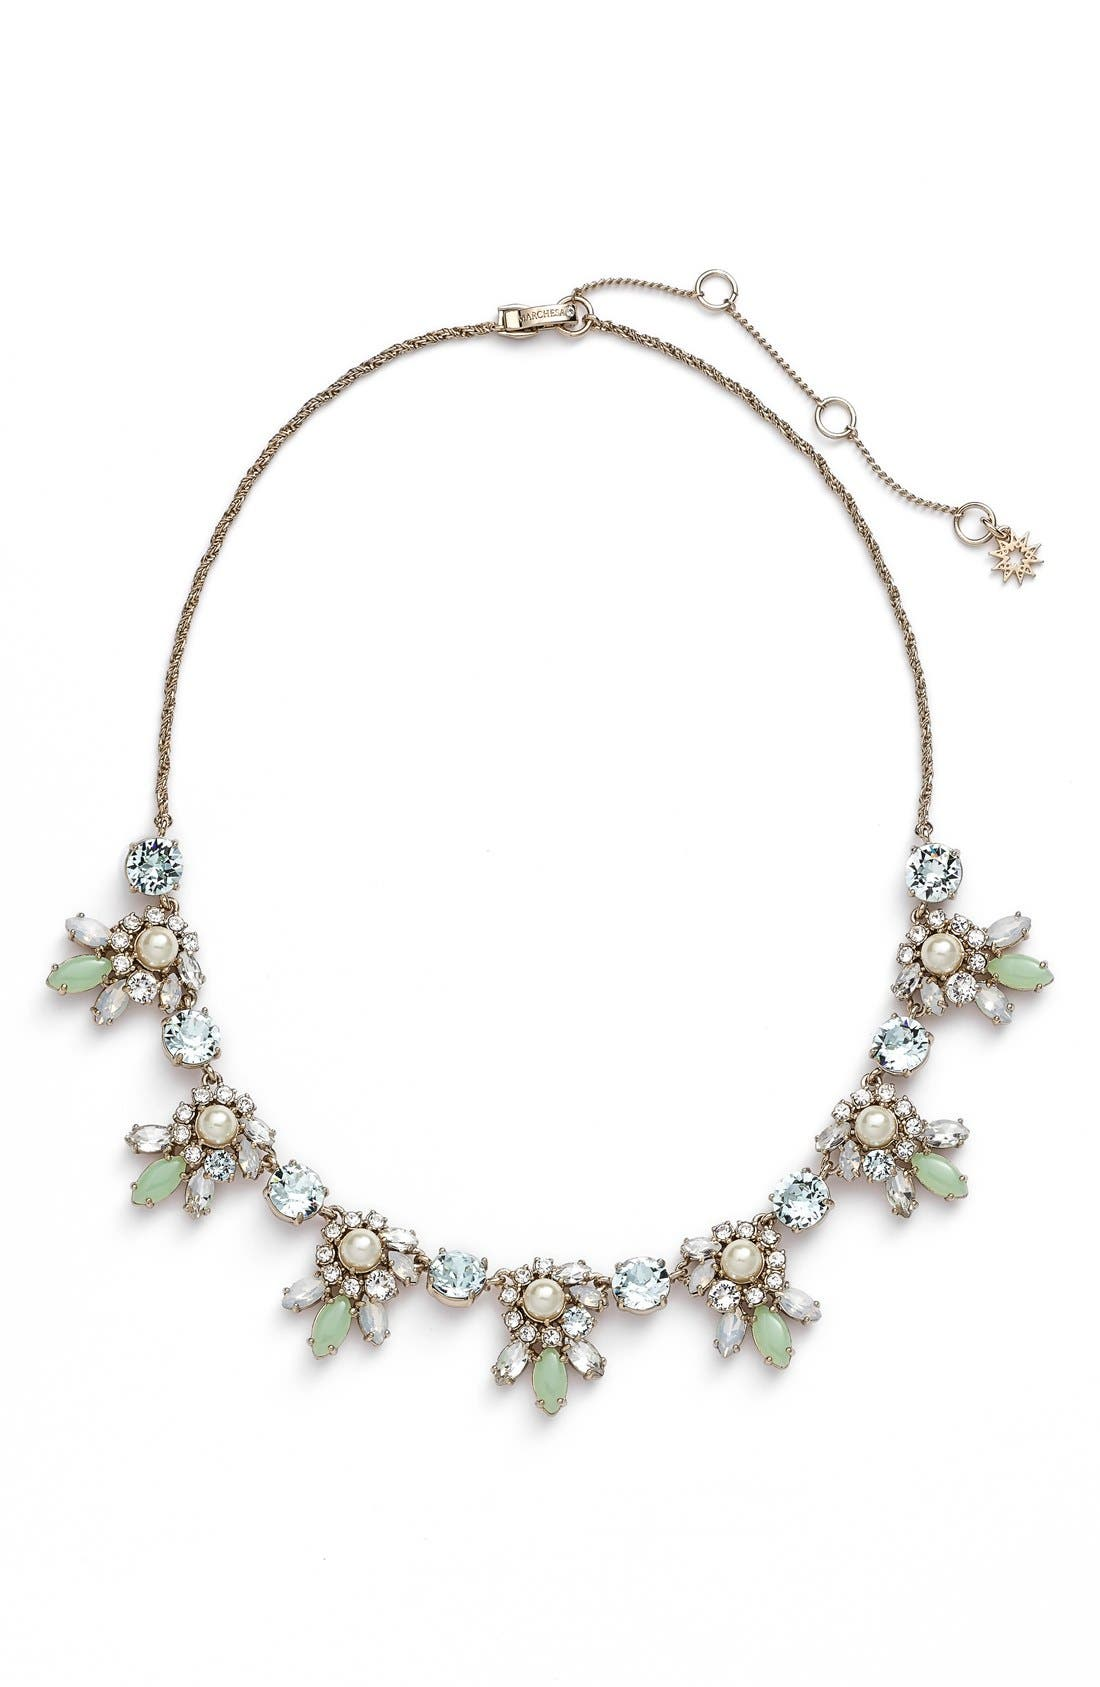 Main Image - Marchesa Crystal Cluster Bib Necklace